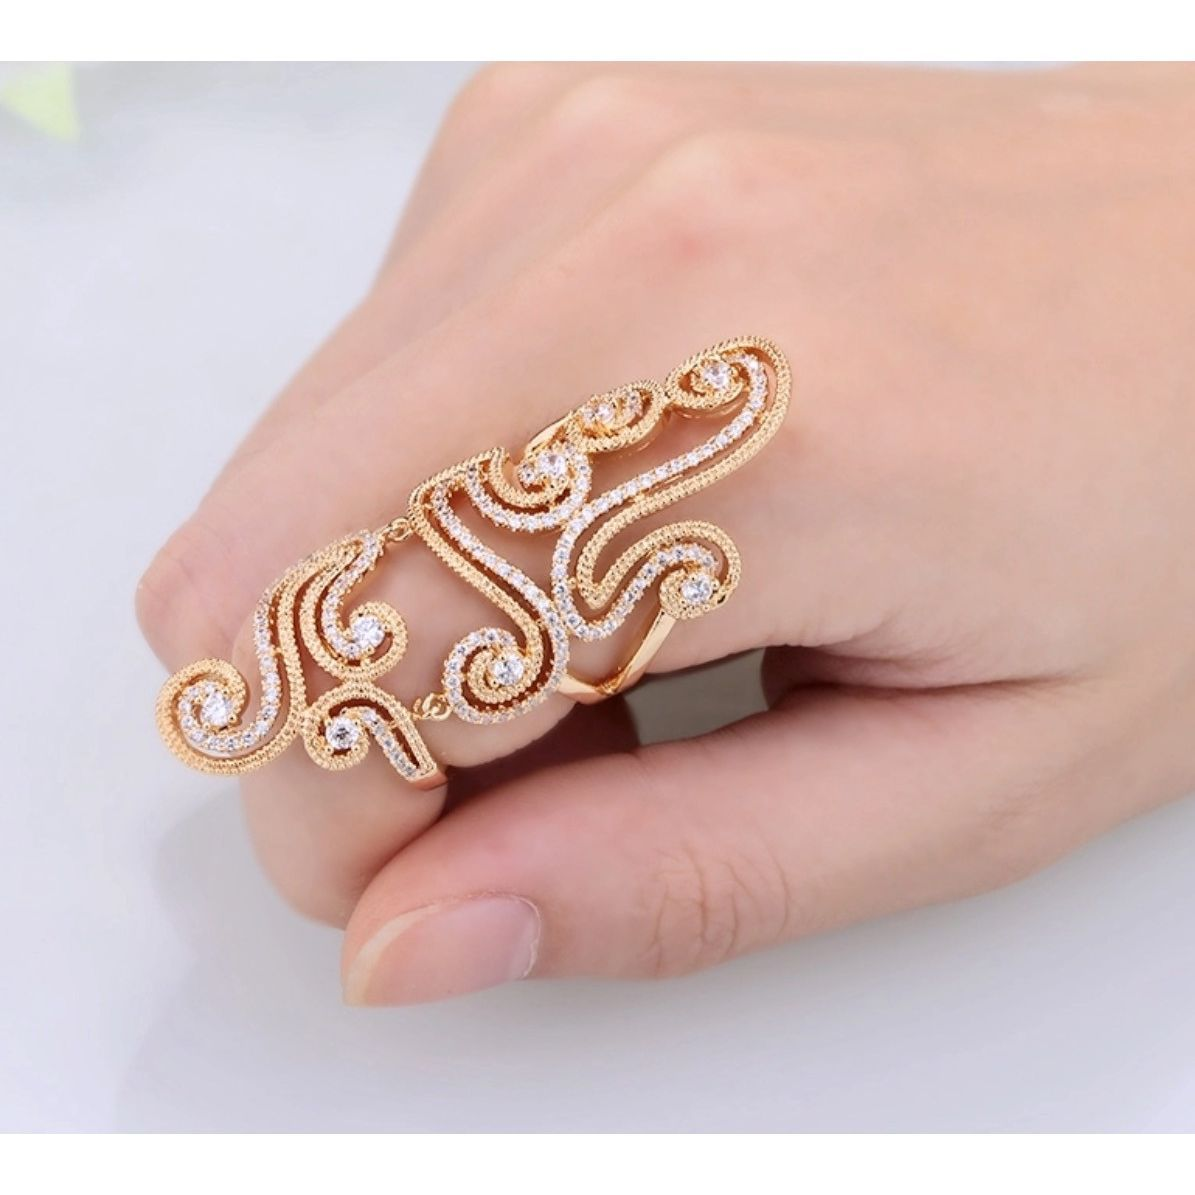 Gold Swirl Full Finger Ring | Products | Pinterest | Products